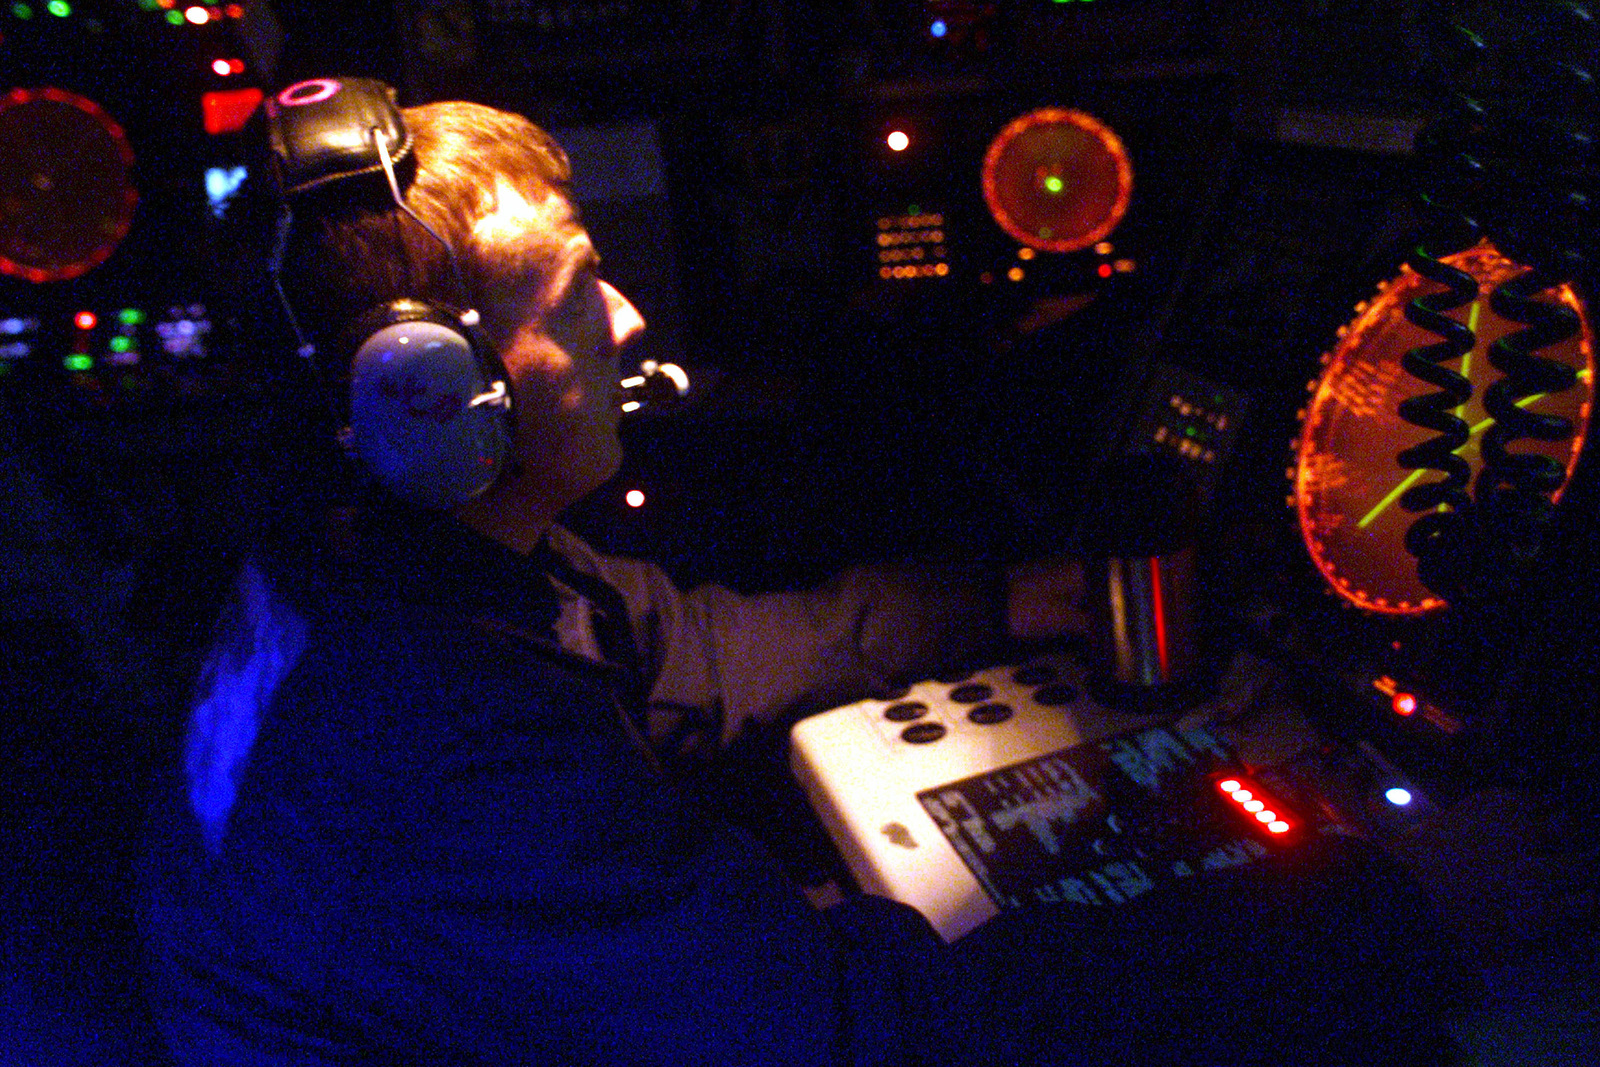 US Navy Fire Control Technician Second Class Tim Hartzog, acts as Weapons Control Officer aboard USS REUBEN JAMES (FFG 57) during Exercise TEAMWORK SOUTH '99 off the coast of Chile